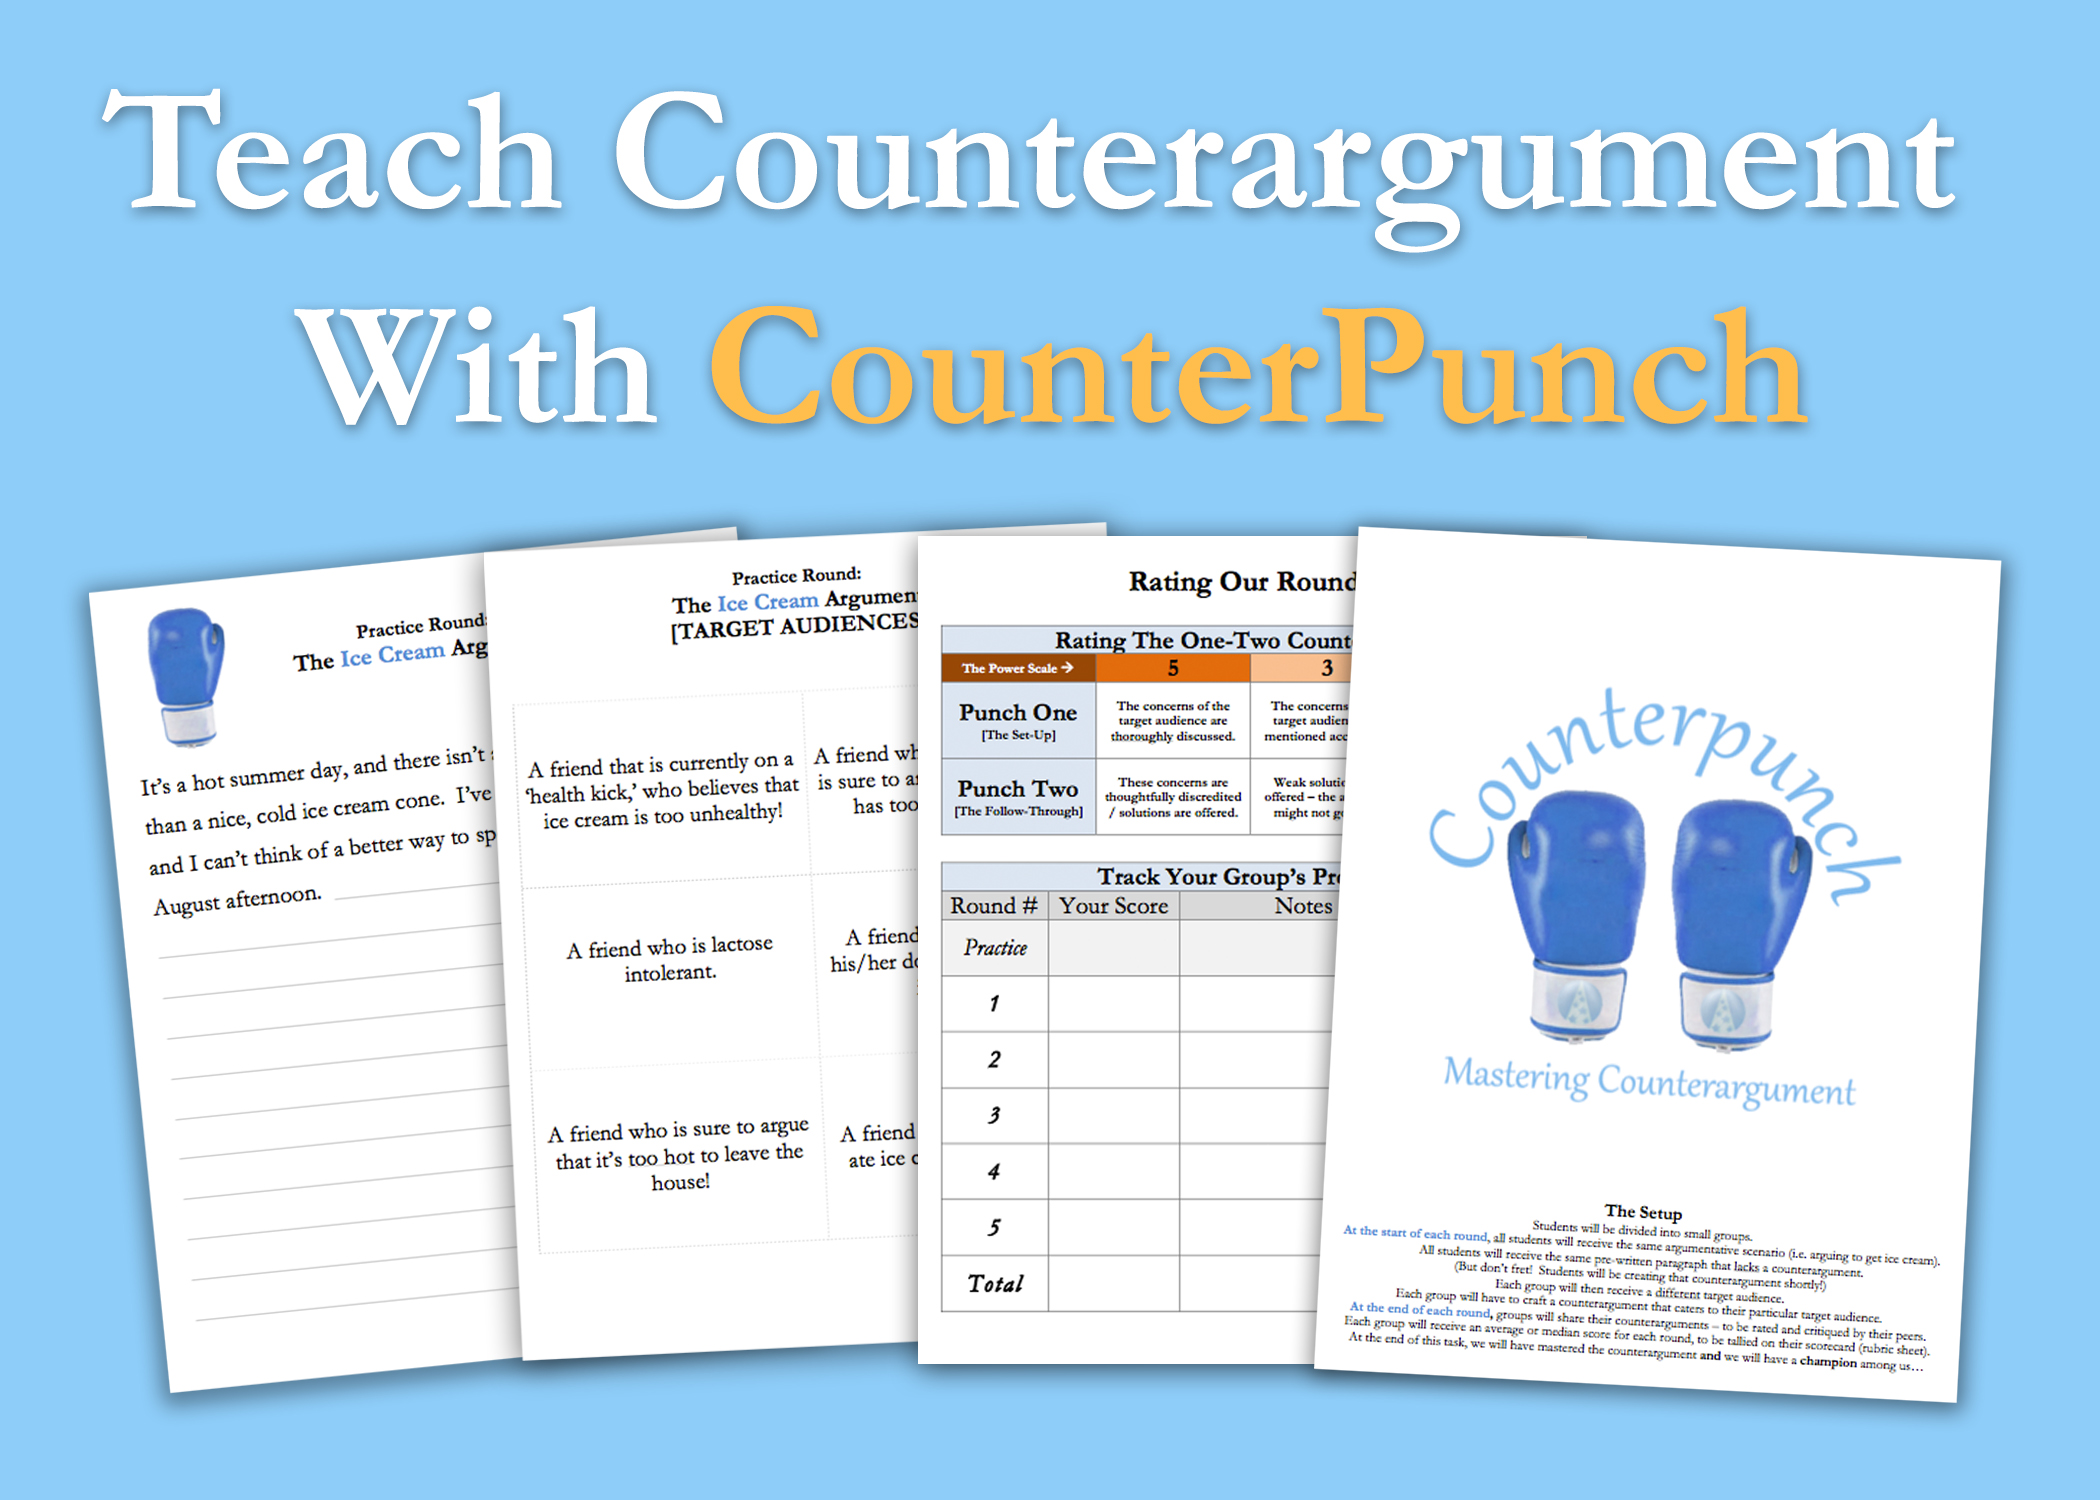 Counterargument lesson plan